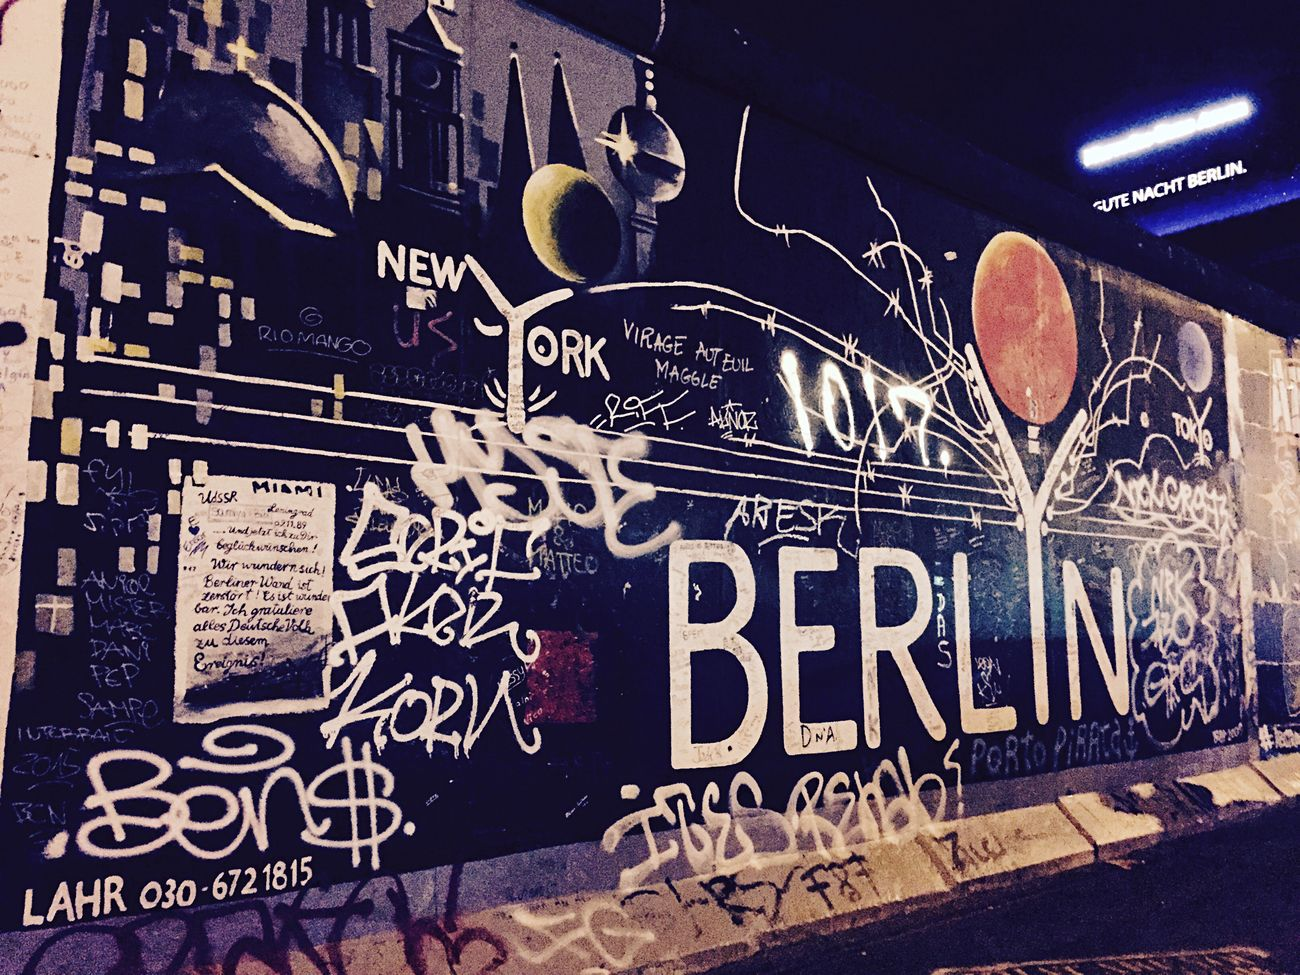 New York Loves Berlin Berlin Wall